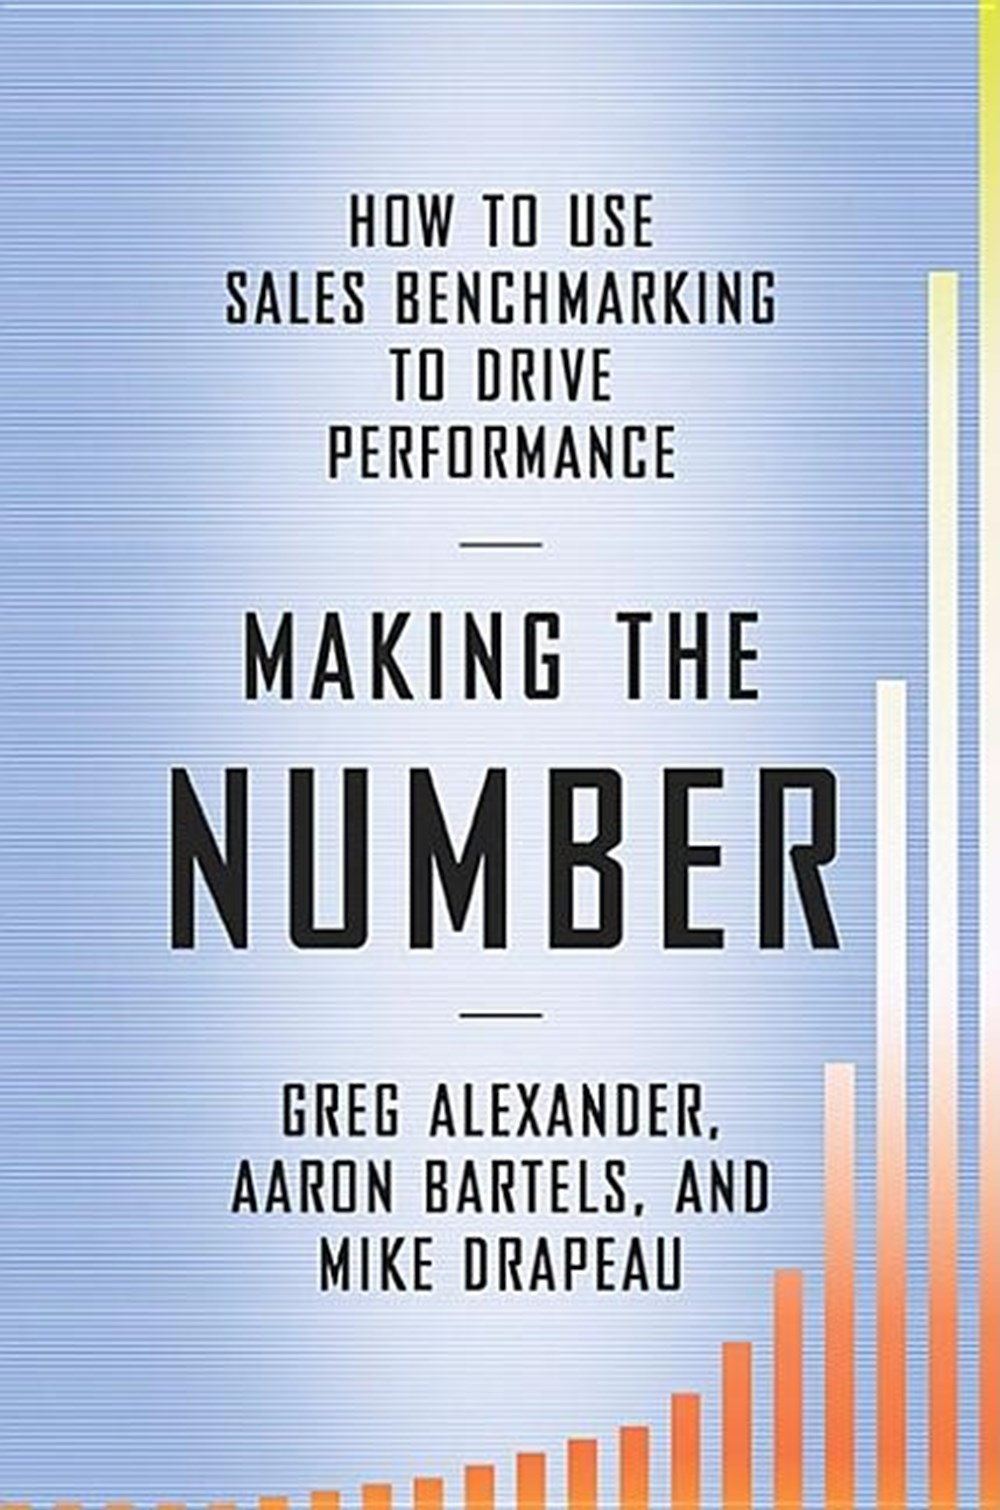 Making the Number How to Use Sales Benchmarking to Drive Performance